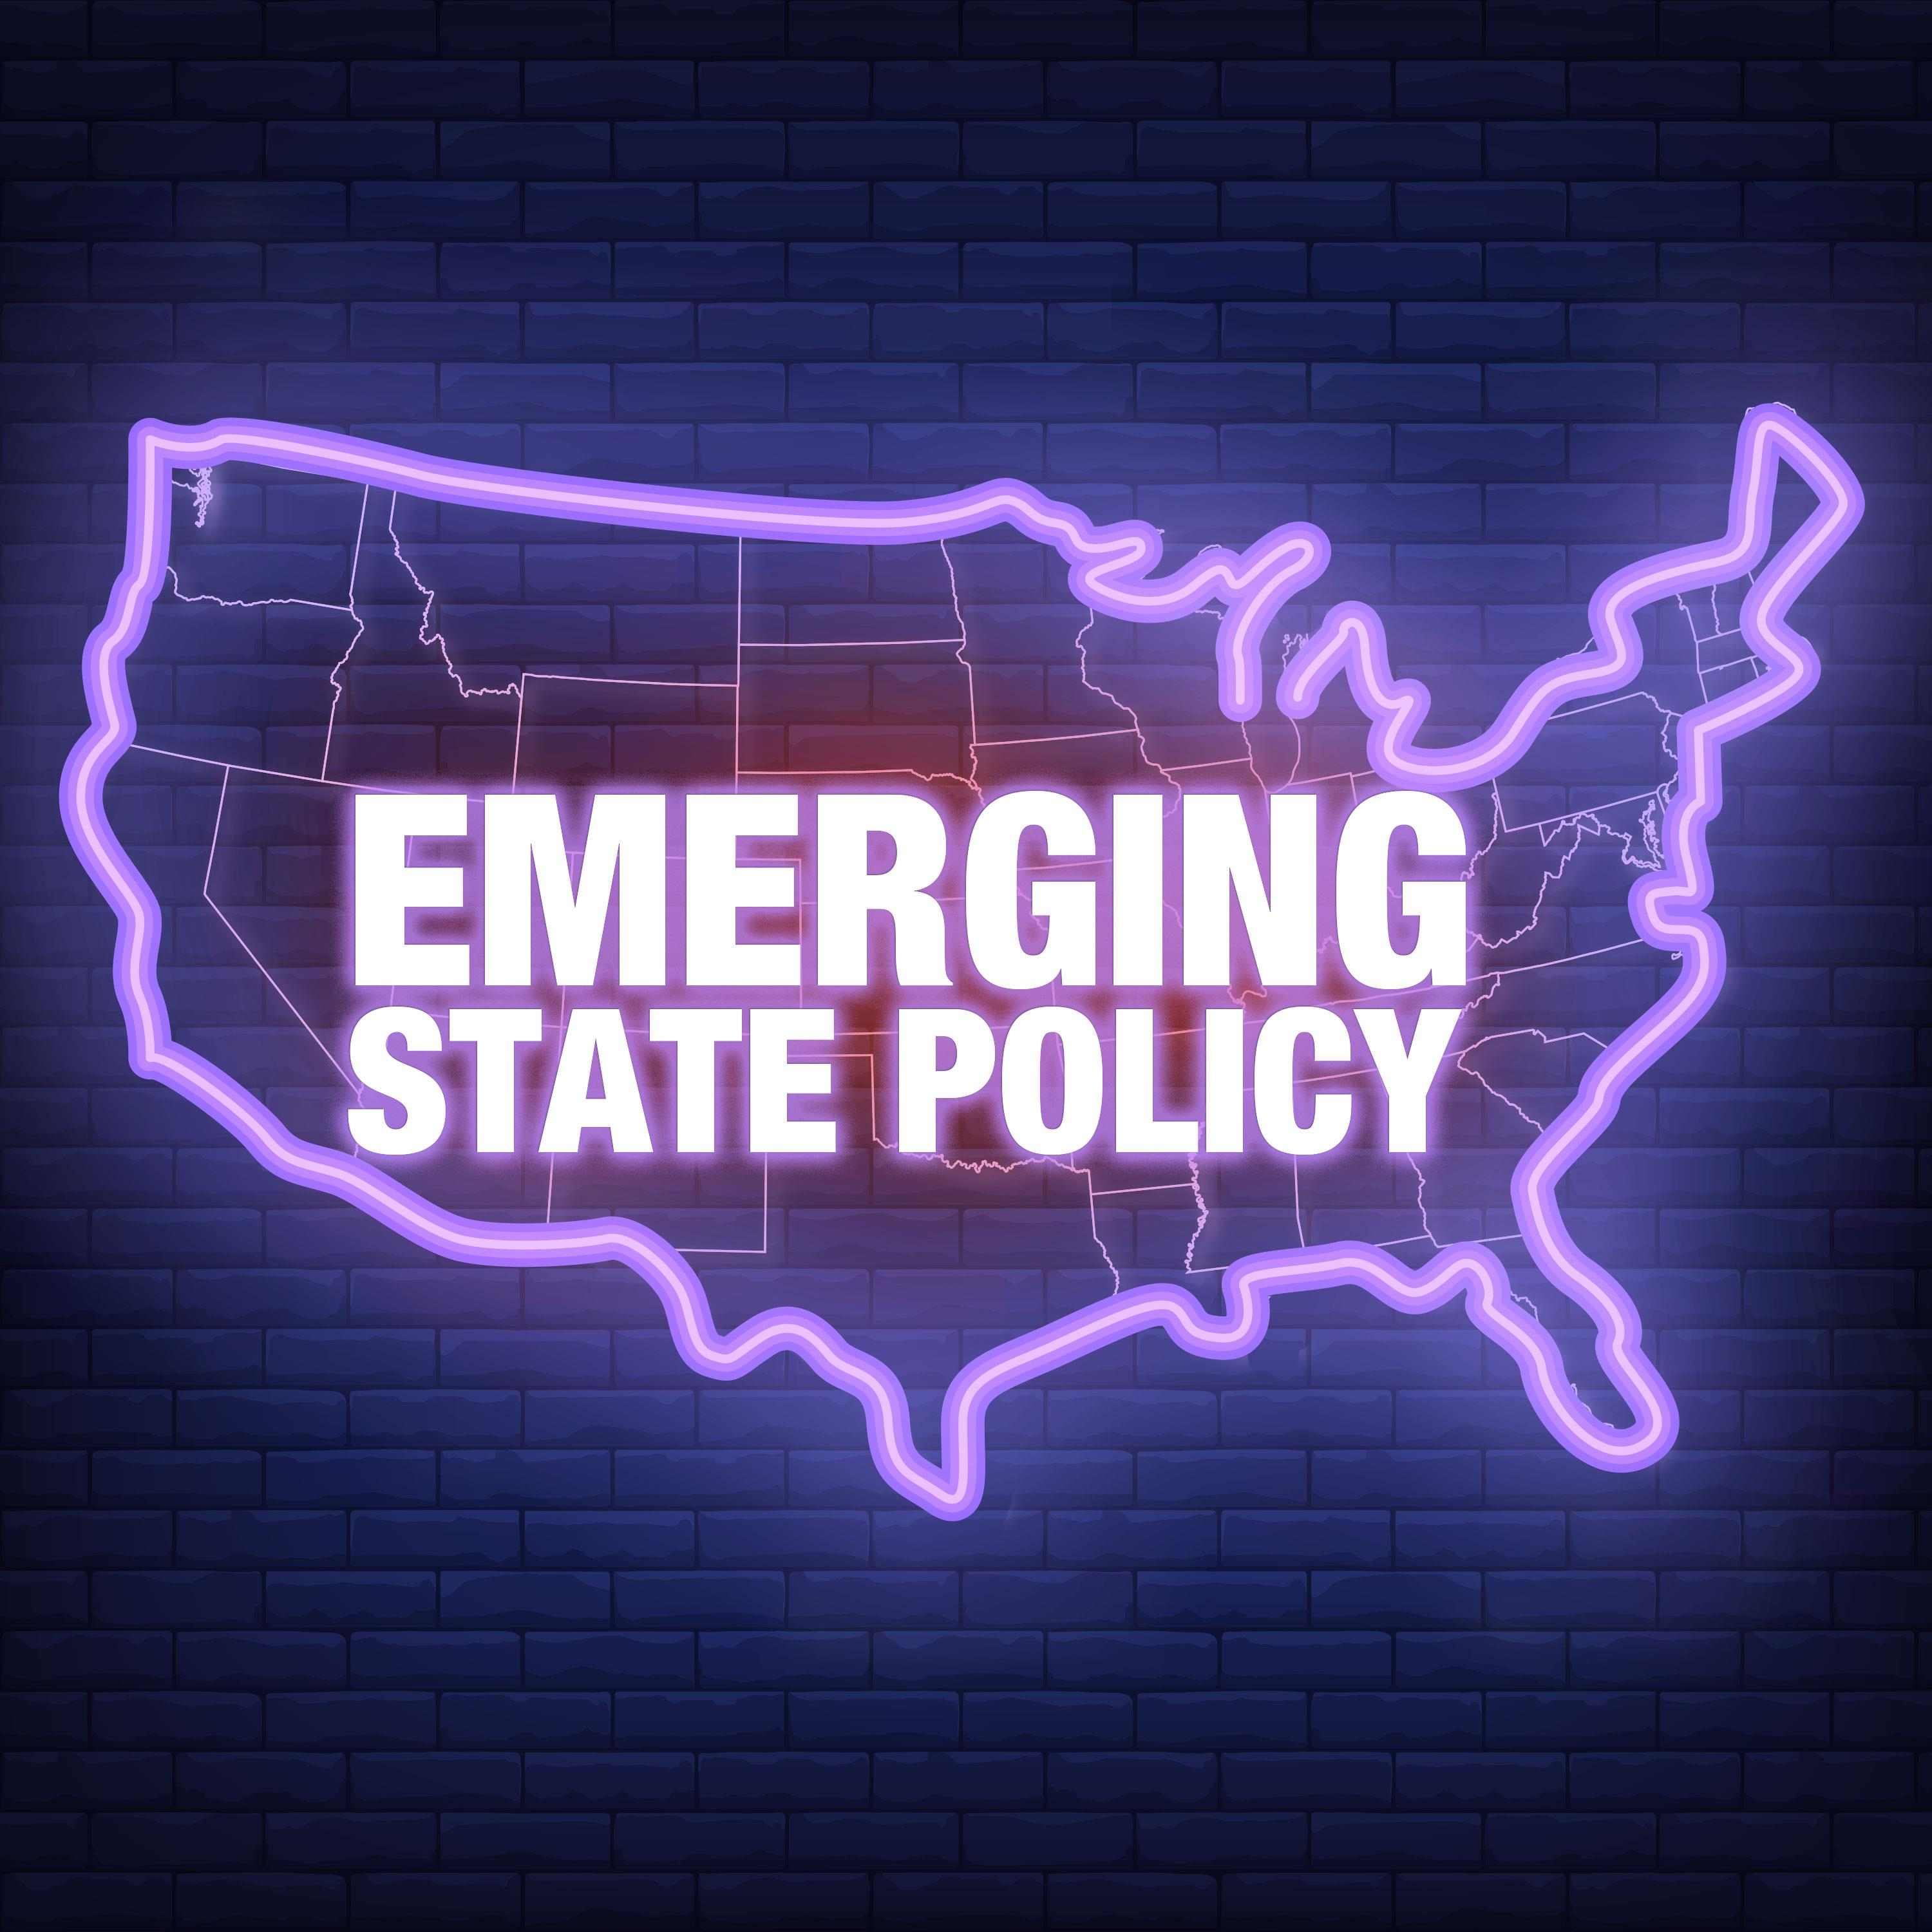 Emerging State Policy